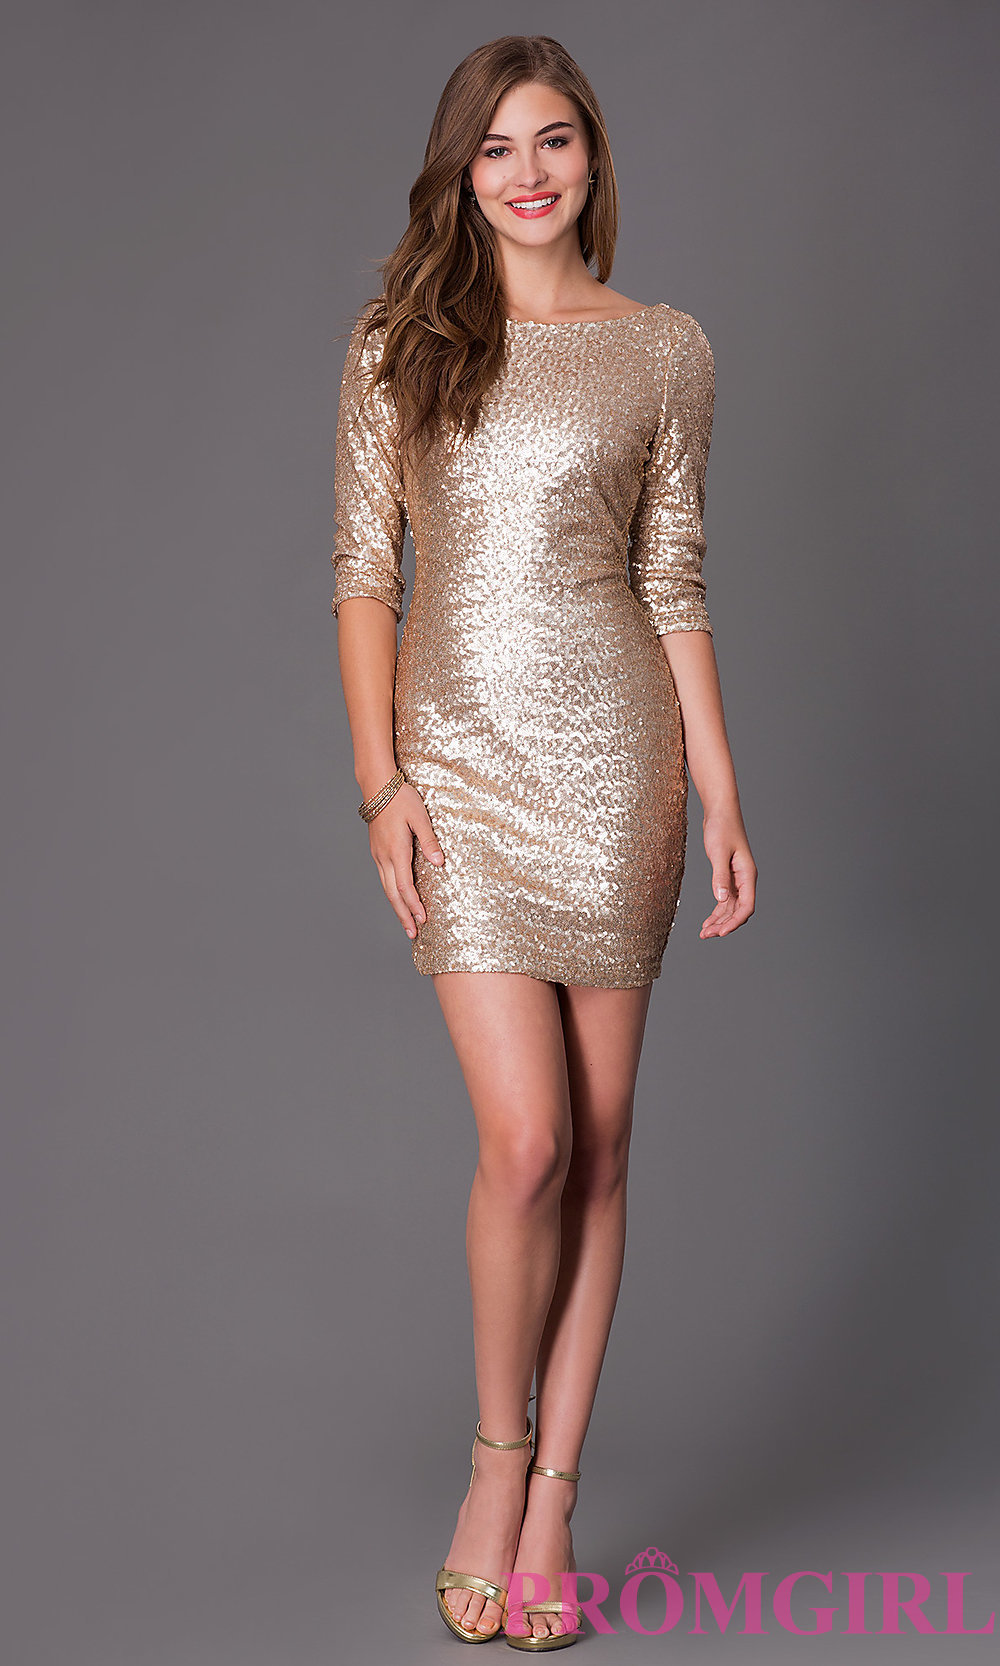 gold dress hover to zoom ytulozw